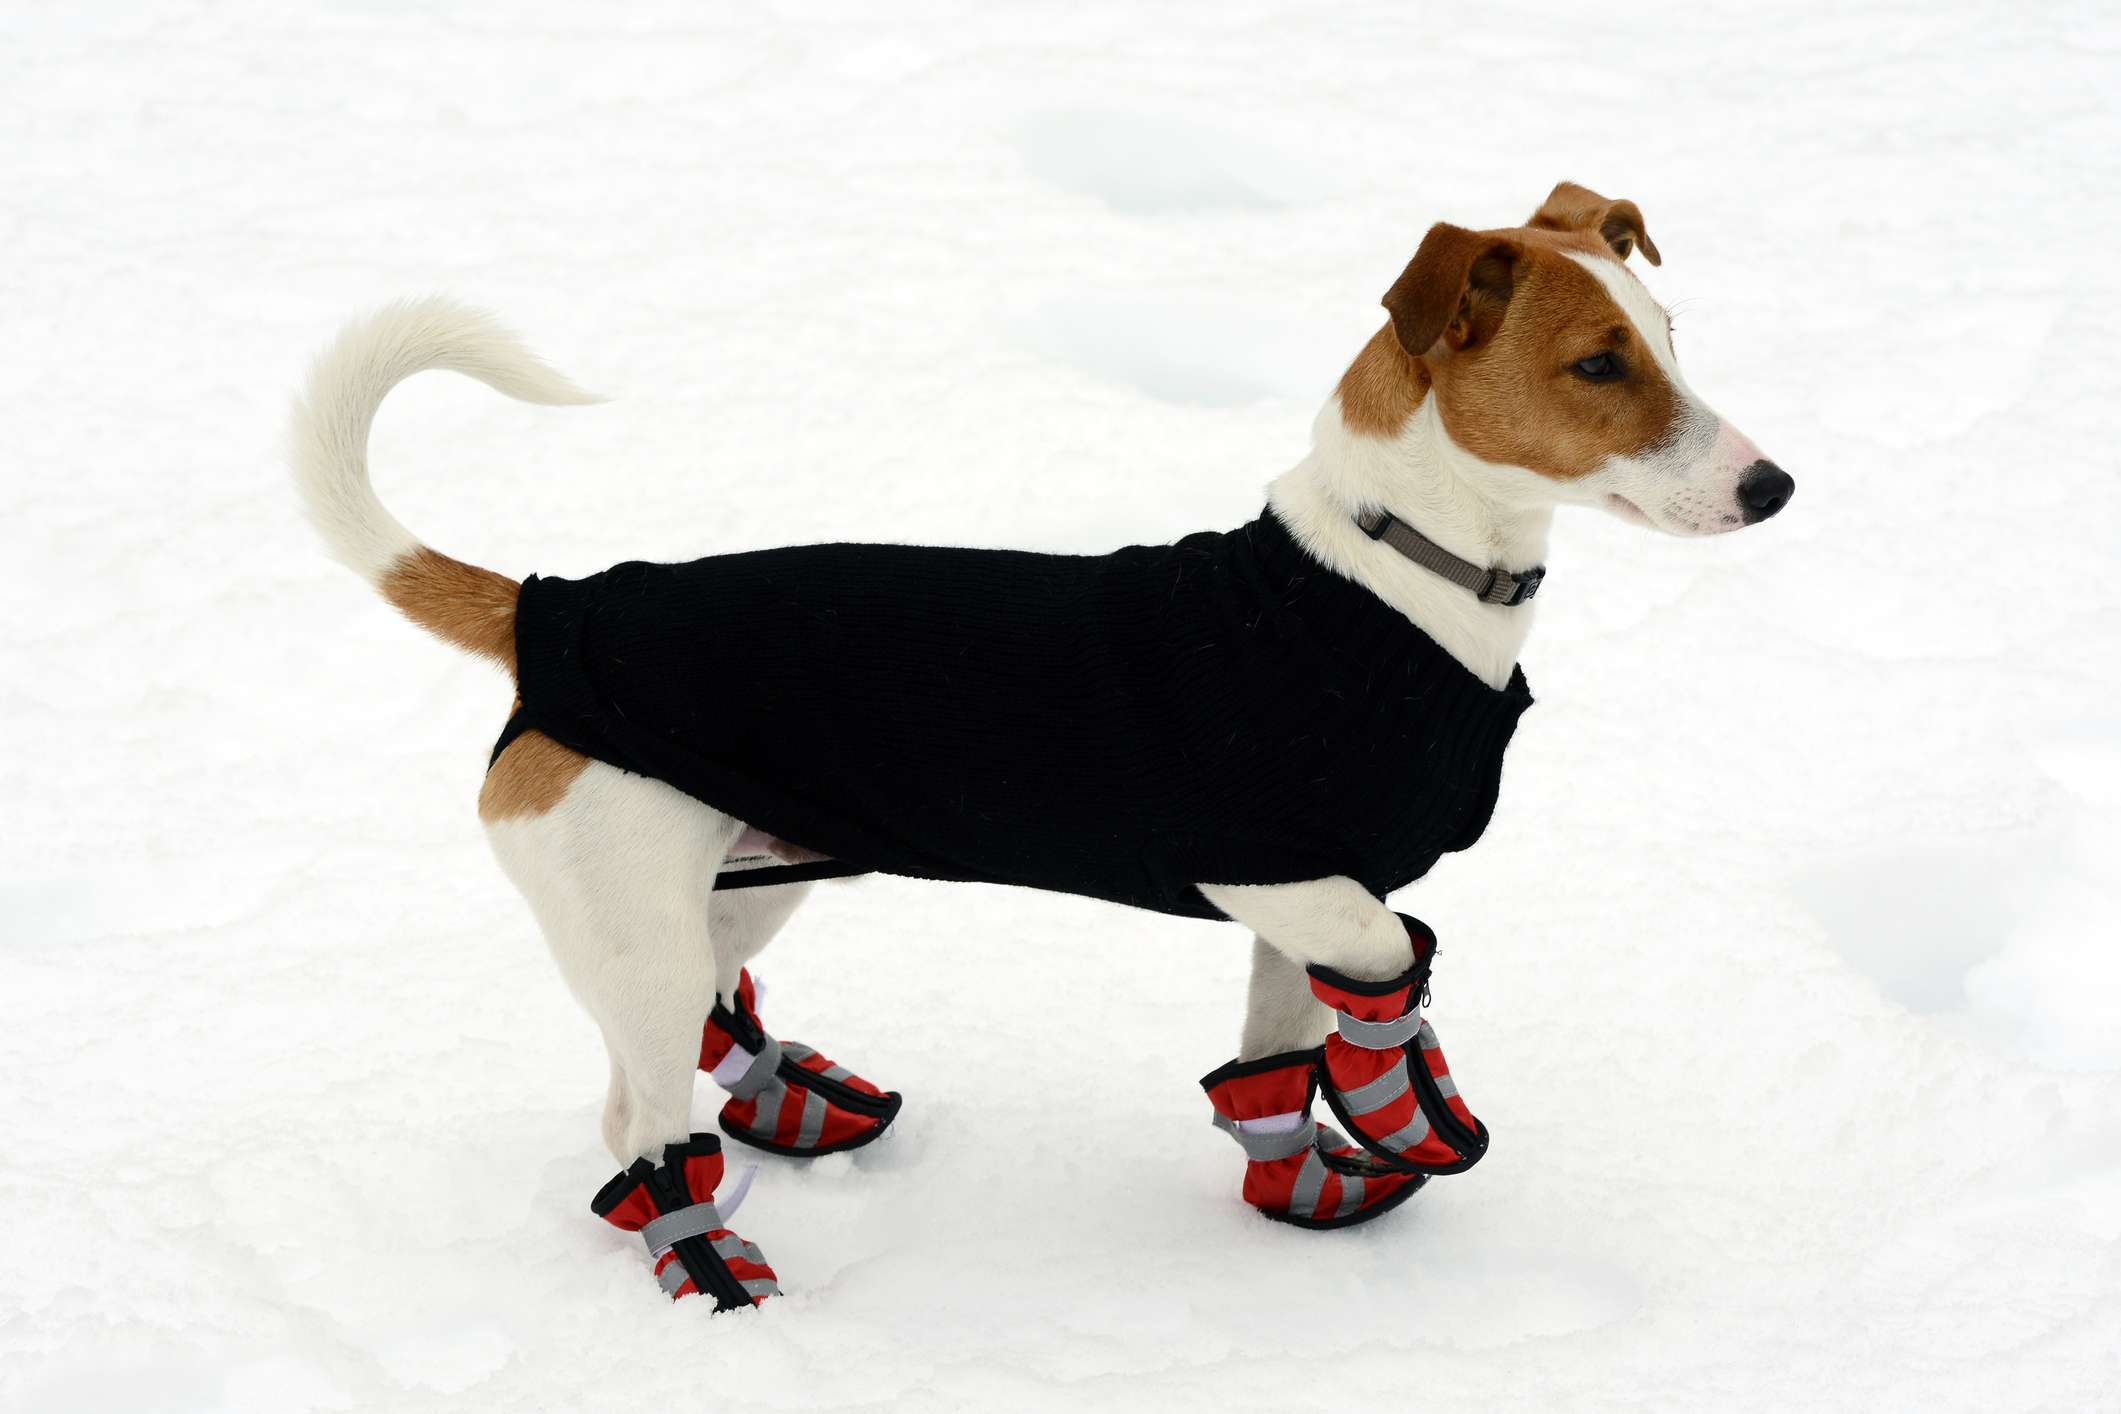 Dog wearing booties and a sweater in the snow